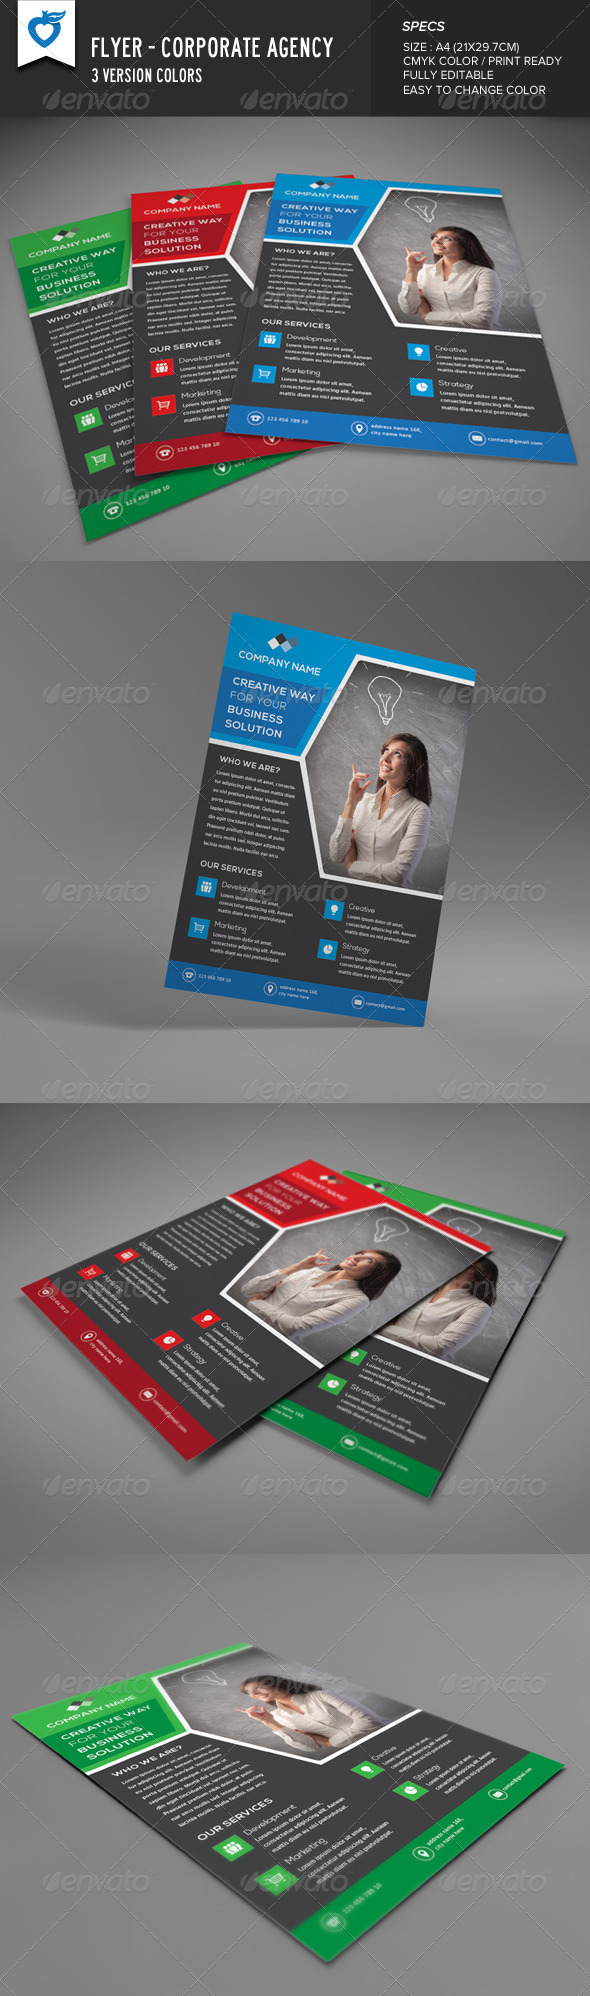 Corporate Flyer Agency